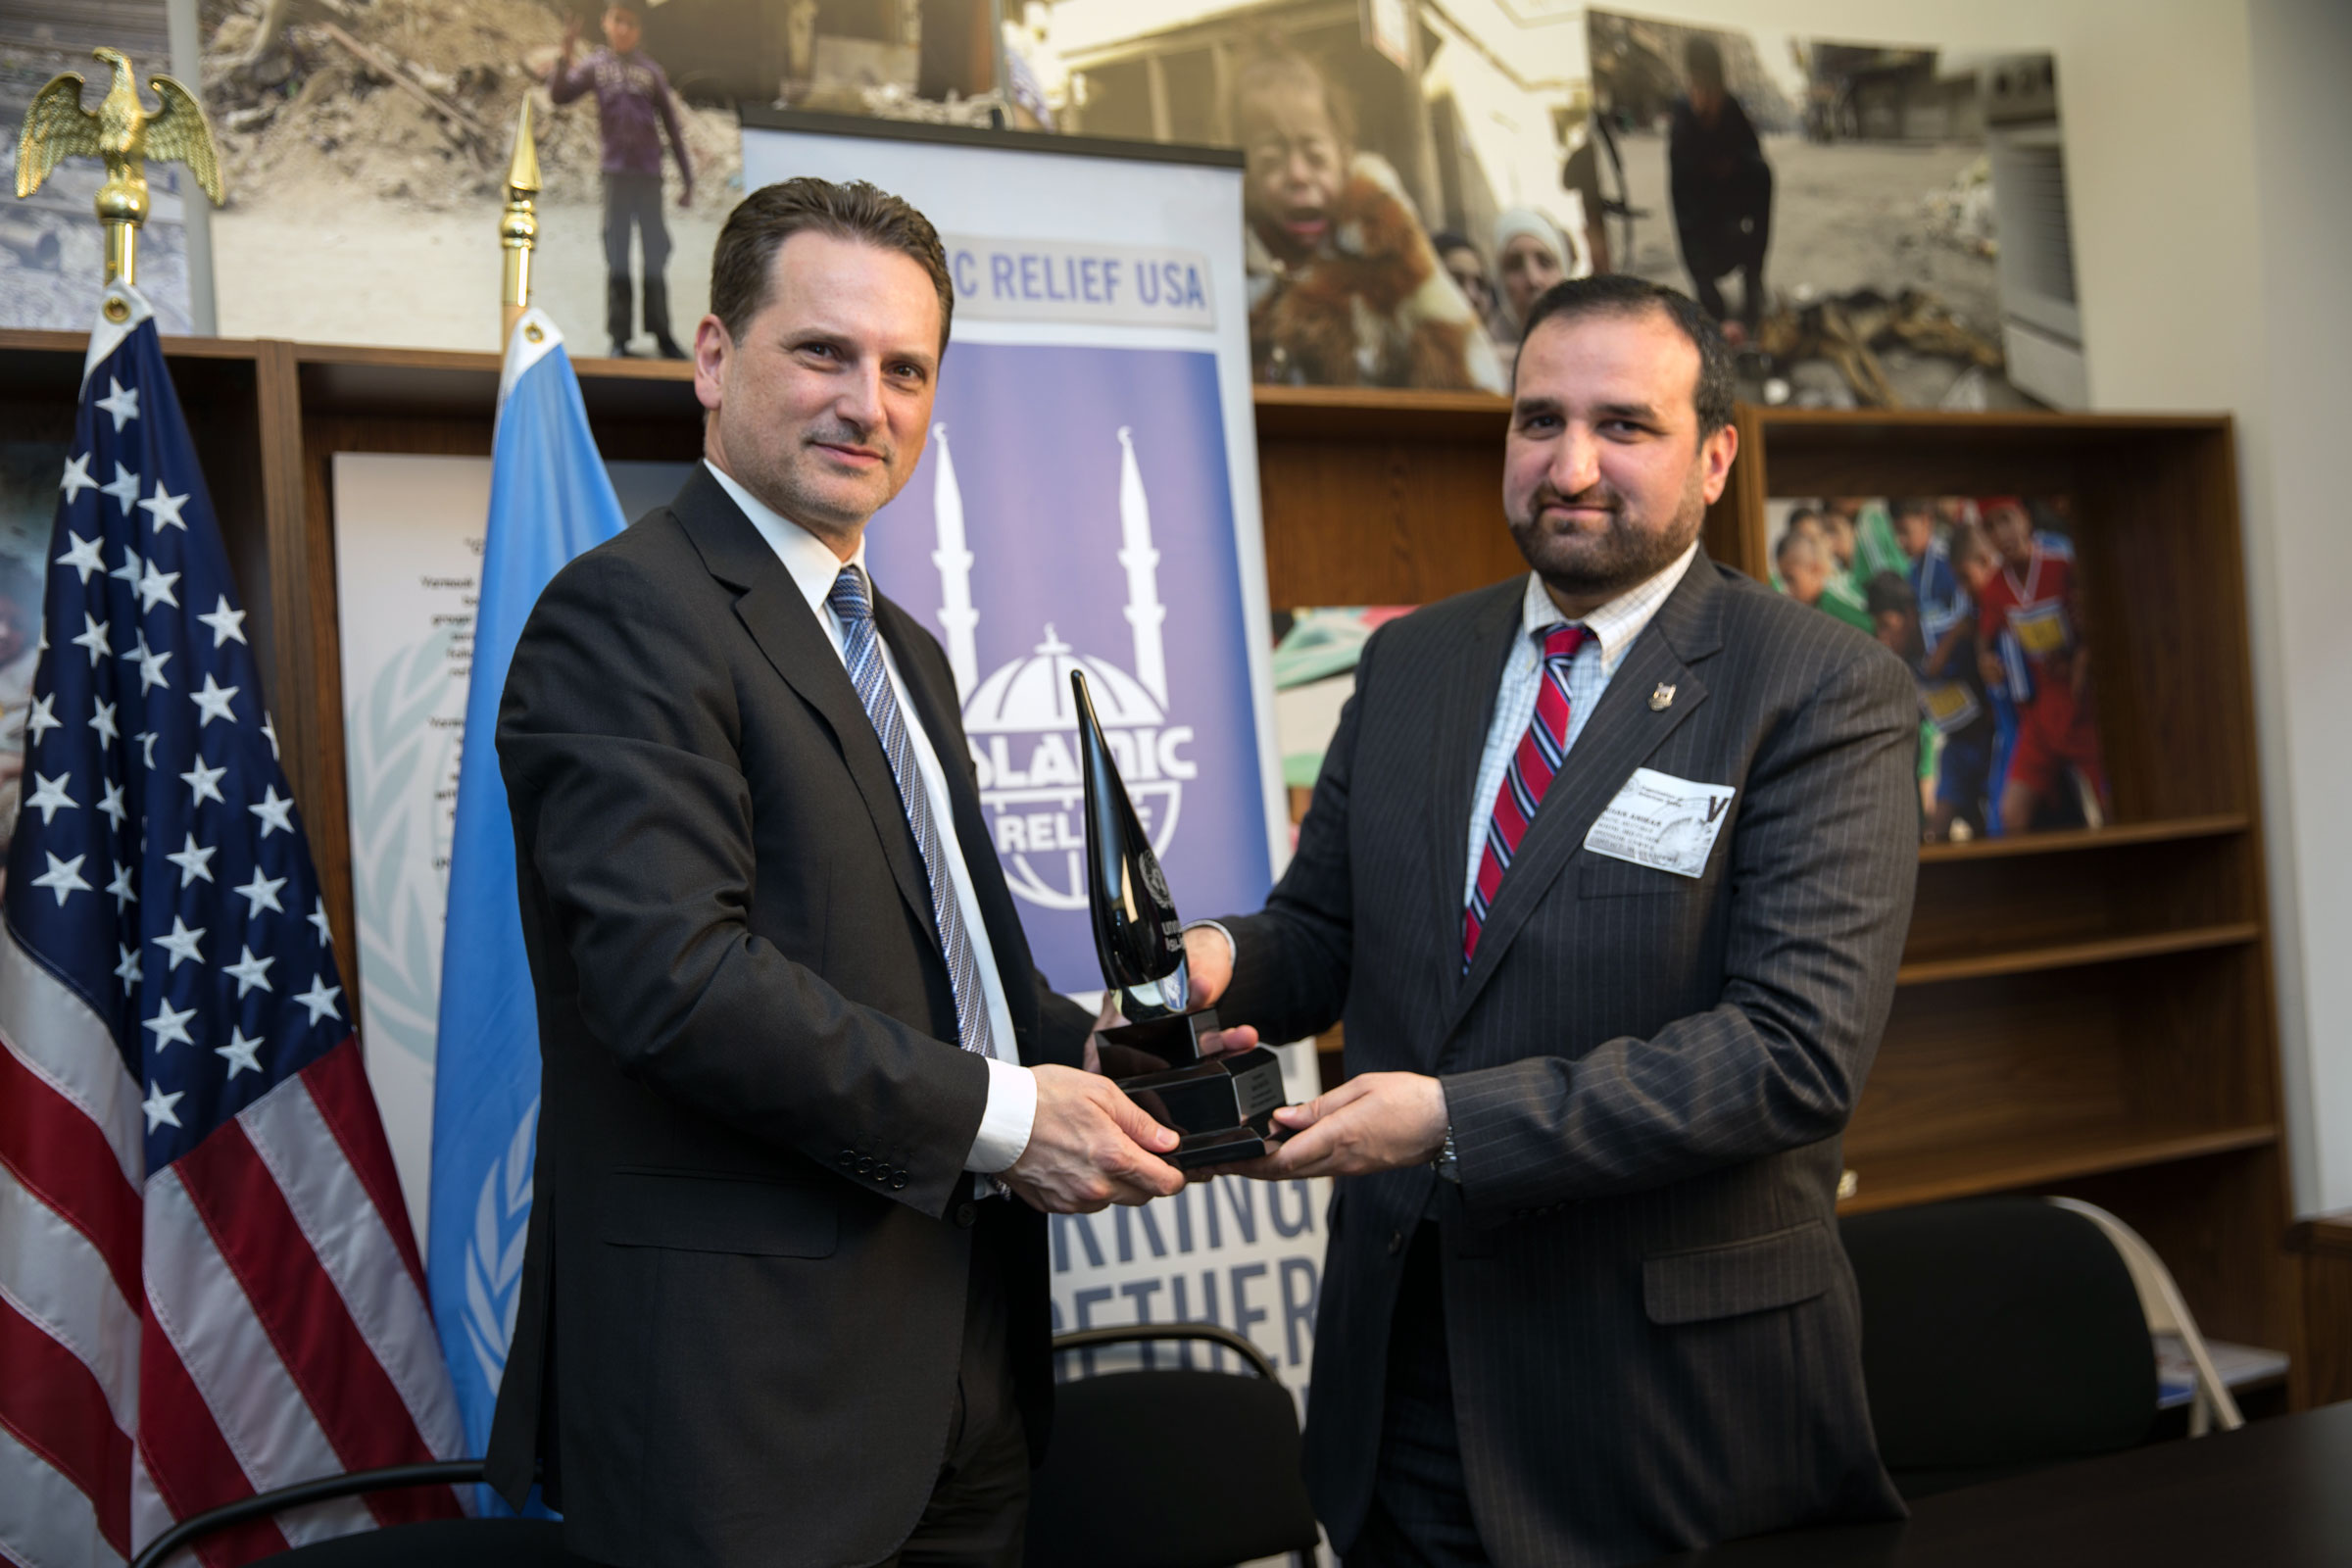 UNRWA thanks Islamic Relief USA for strong support